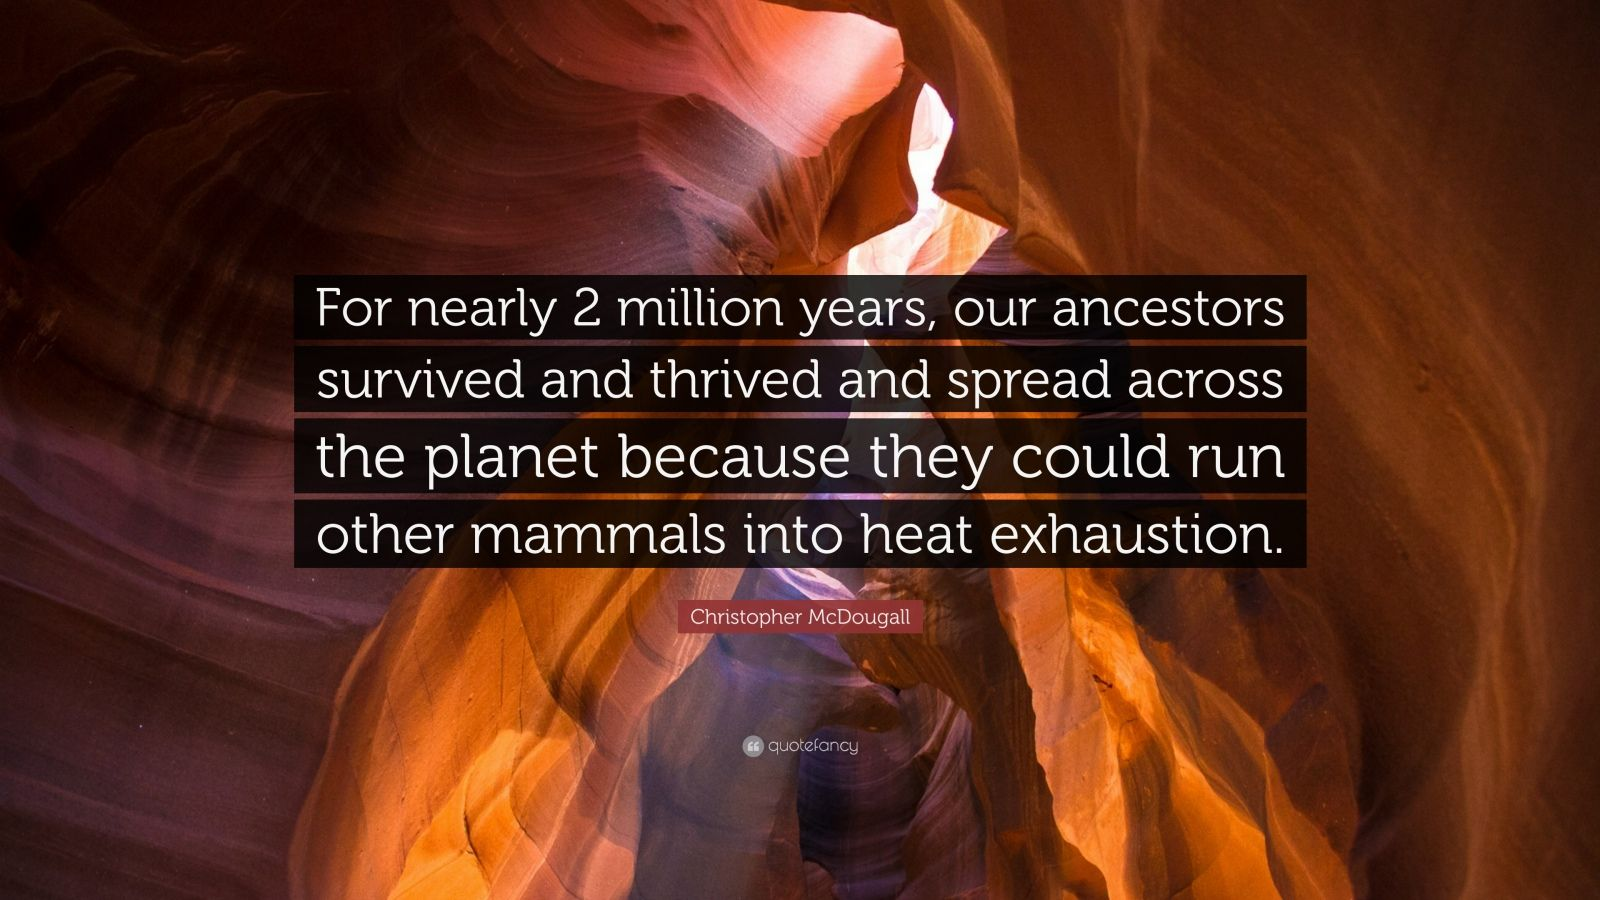 """Christopher McDougall Quote: """"For nearly 2 million years, our ancestors survived and thrived and spread across the planet because they could run other mammals into heat exhaustion."""""""